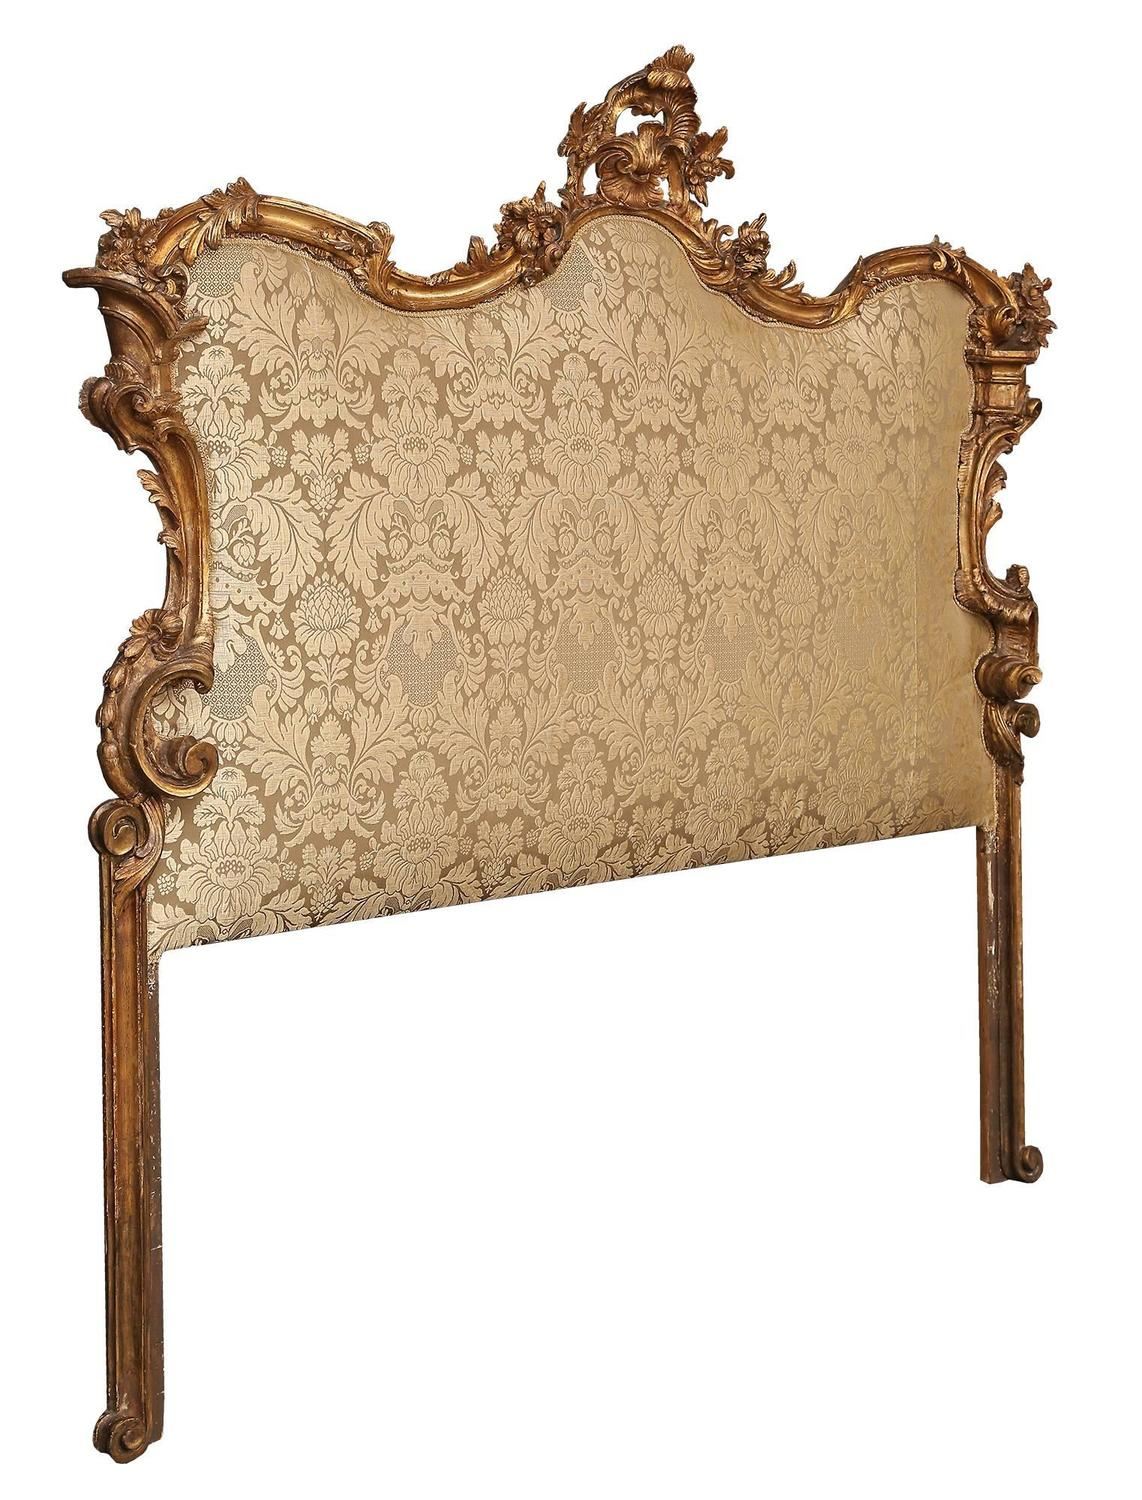 baroque headboard gorgeous velvet tufted gold ornate headboard  - baroque headboard images reverse search